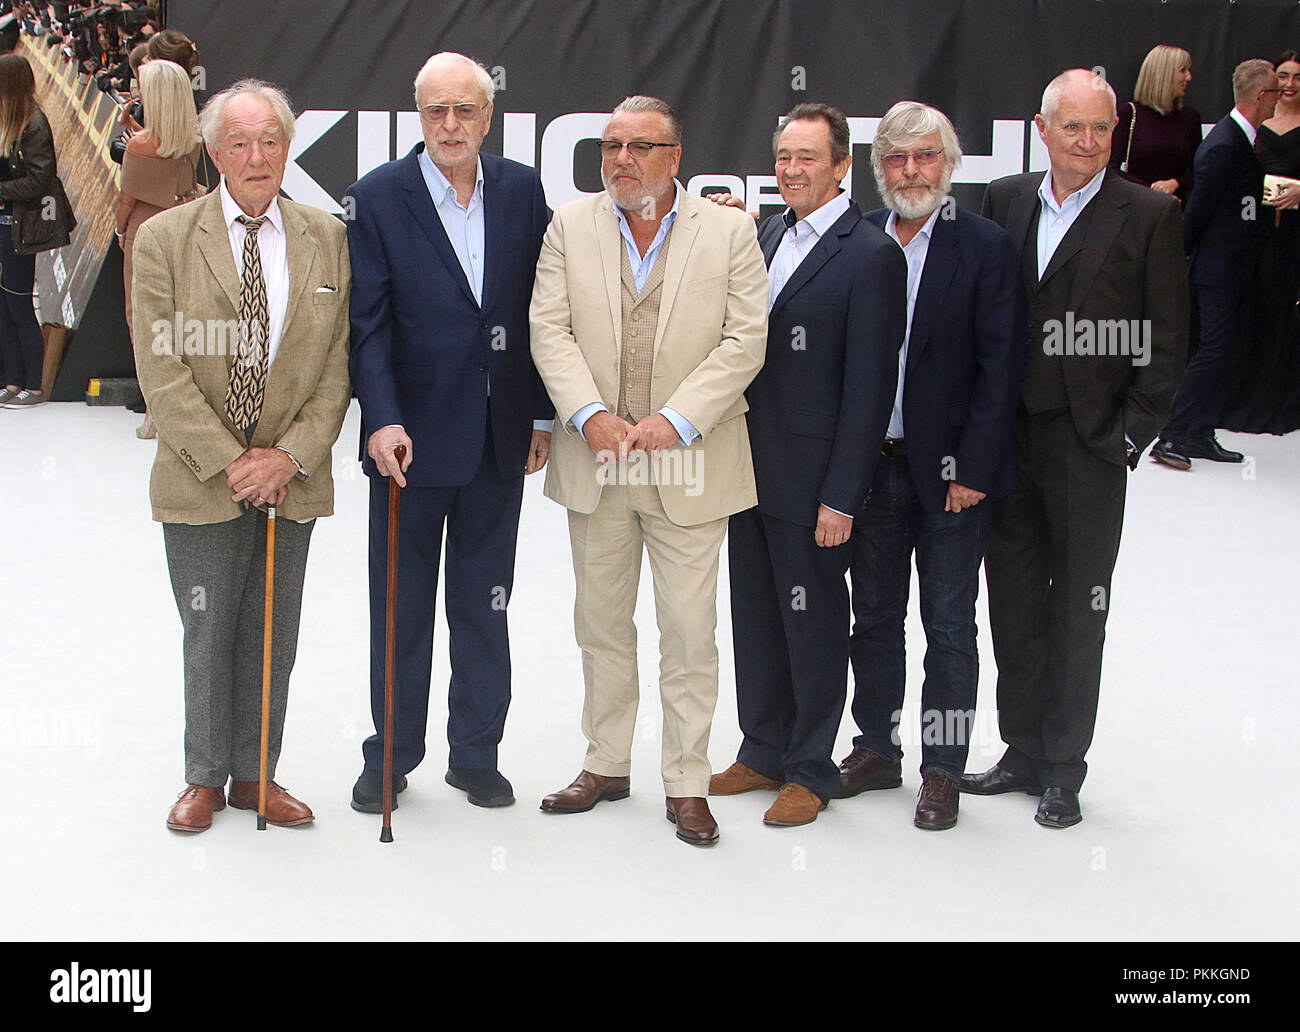 London, UK, 12. Sep 2018. Jim Broadbent, Michael Gambon, Sir Michael Caine, Ray Winstone, Sir Tom Courtenay und Paul Whitehouse nehmen an der König der Diebe Filmpremiere in London Stockbild